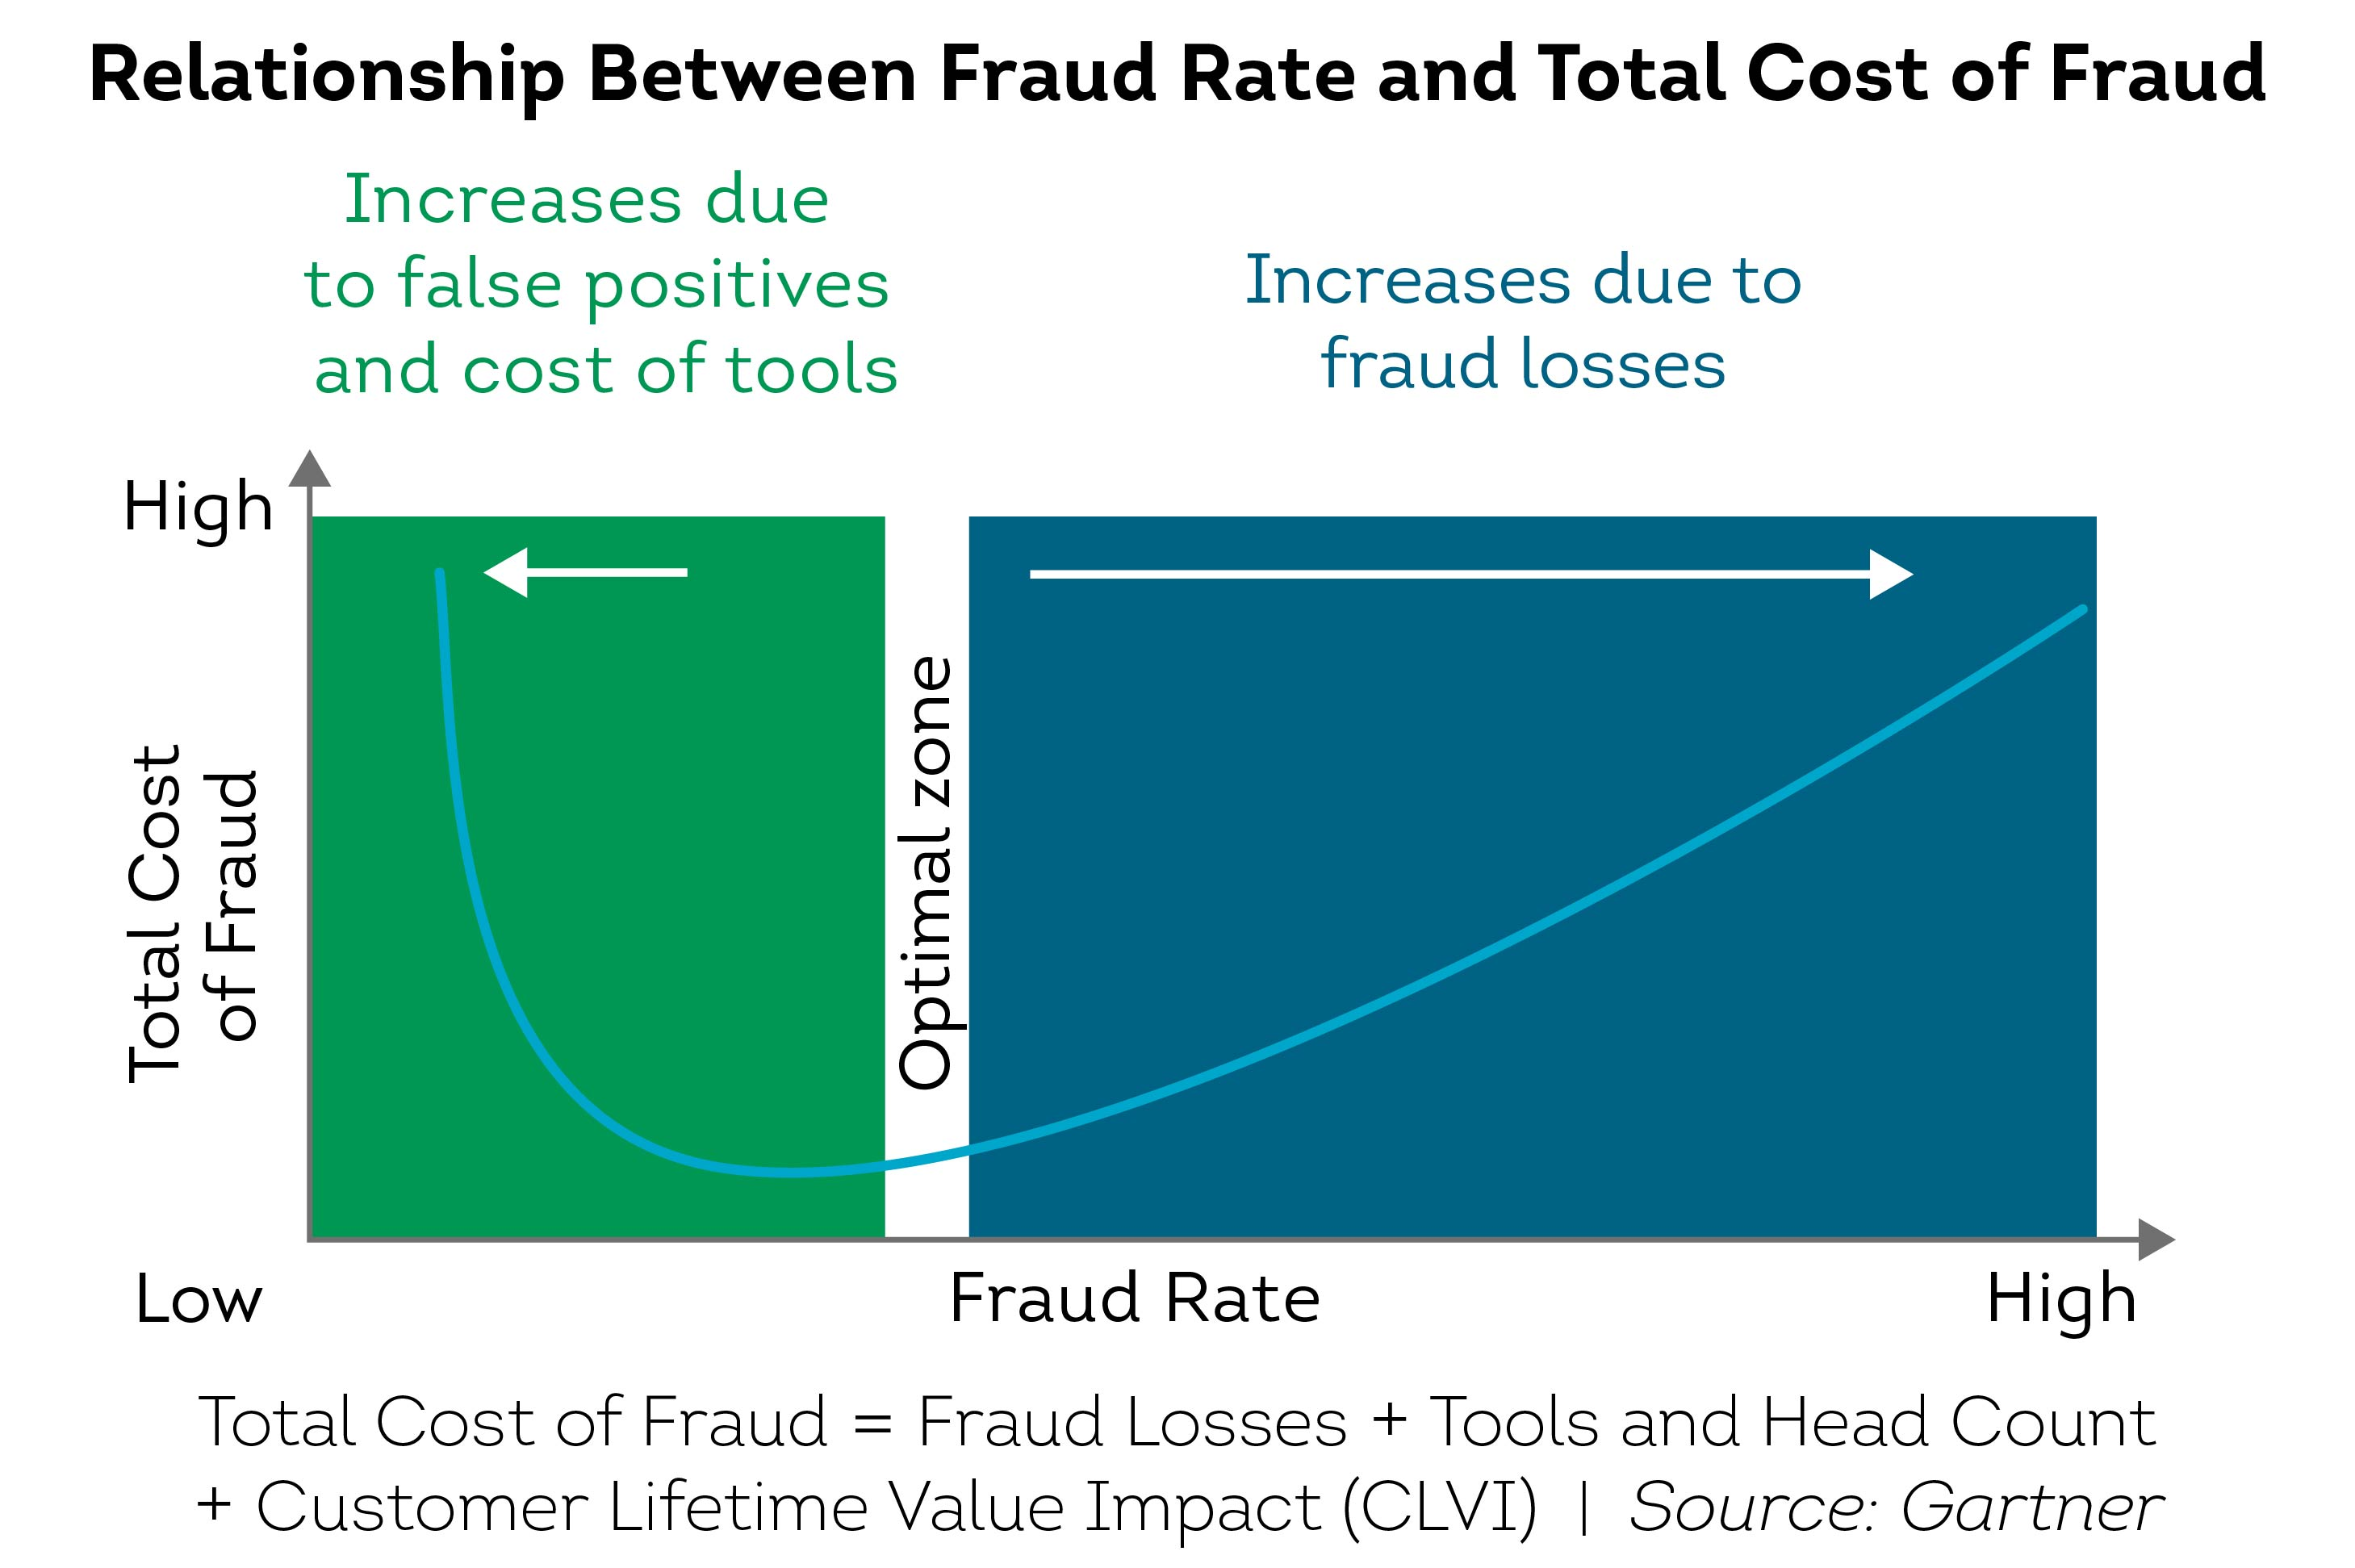 Relationship between Fraud Rate and Total Cost of Fraud